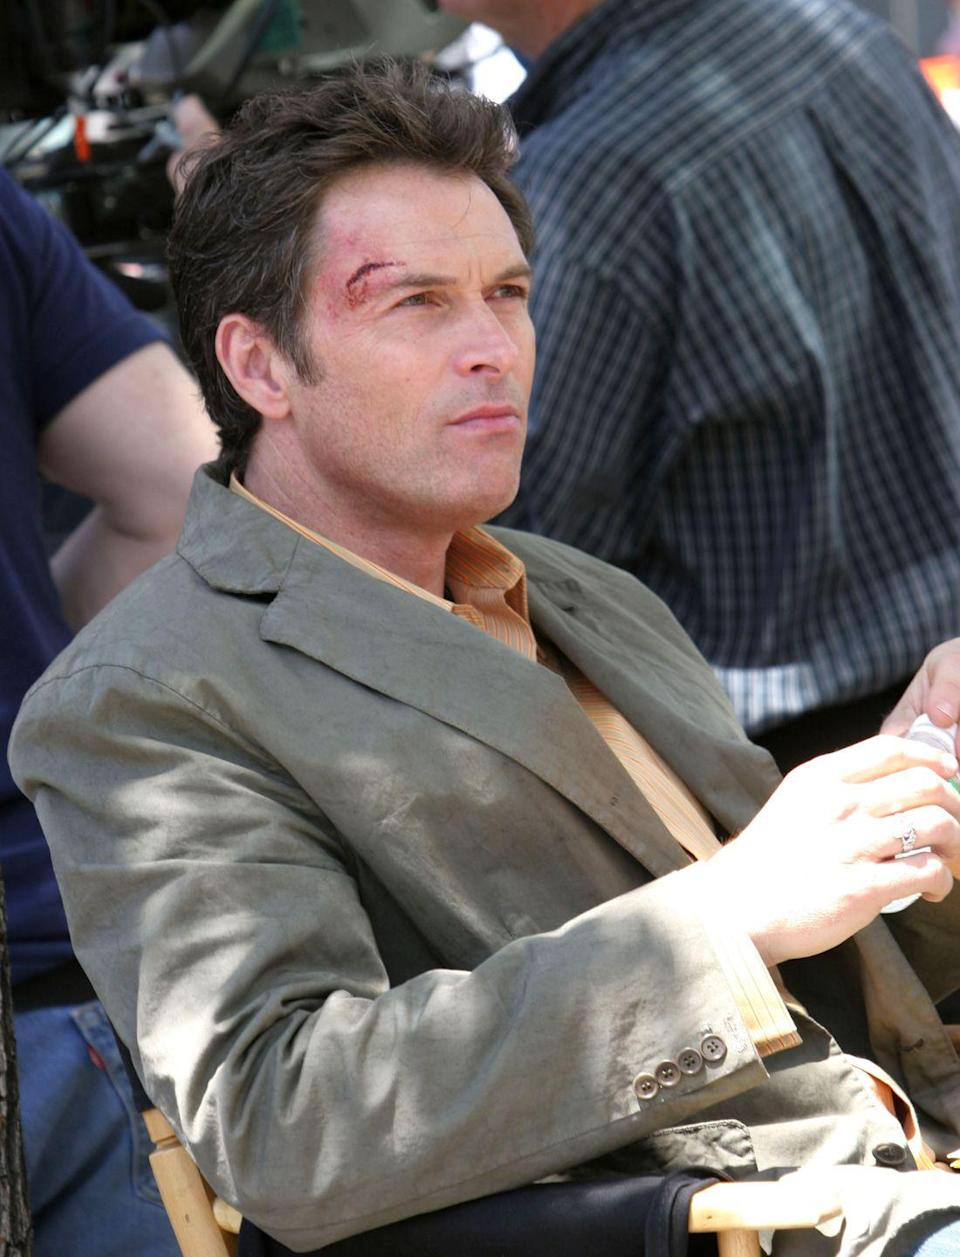 <p>Tim Daly, who played the drug-addicted screenwriter J.T. Dolan, waits on set in special effects makeup before filming a scene. </p>